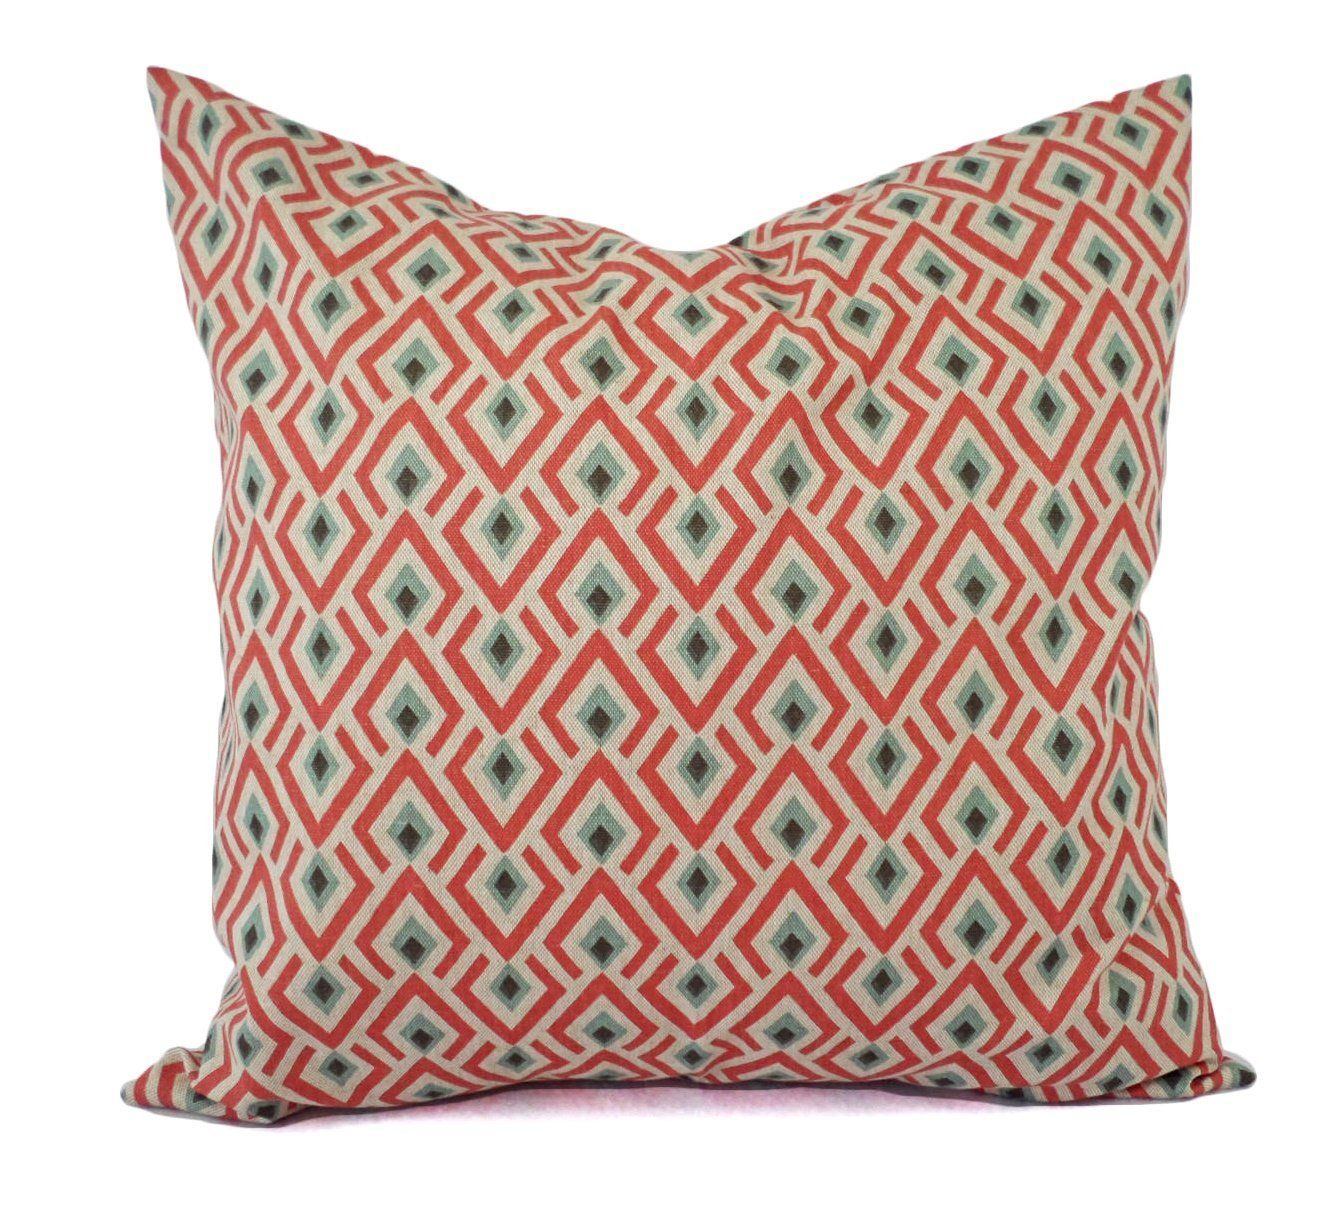 decorative full throw pillow hofdeco microluxe fresh photos starfish coral size of pillows gratograt blanket design